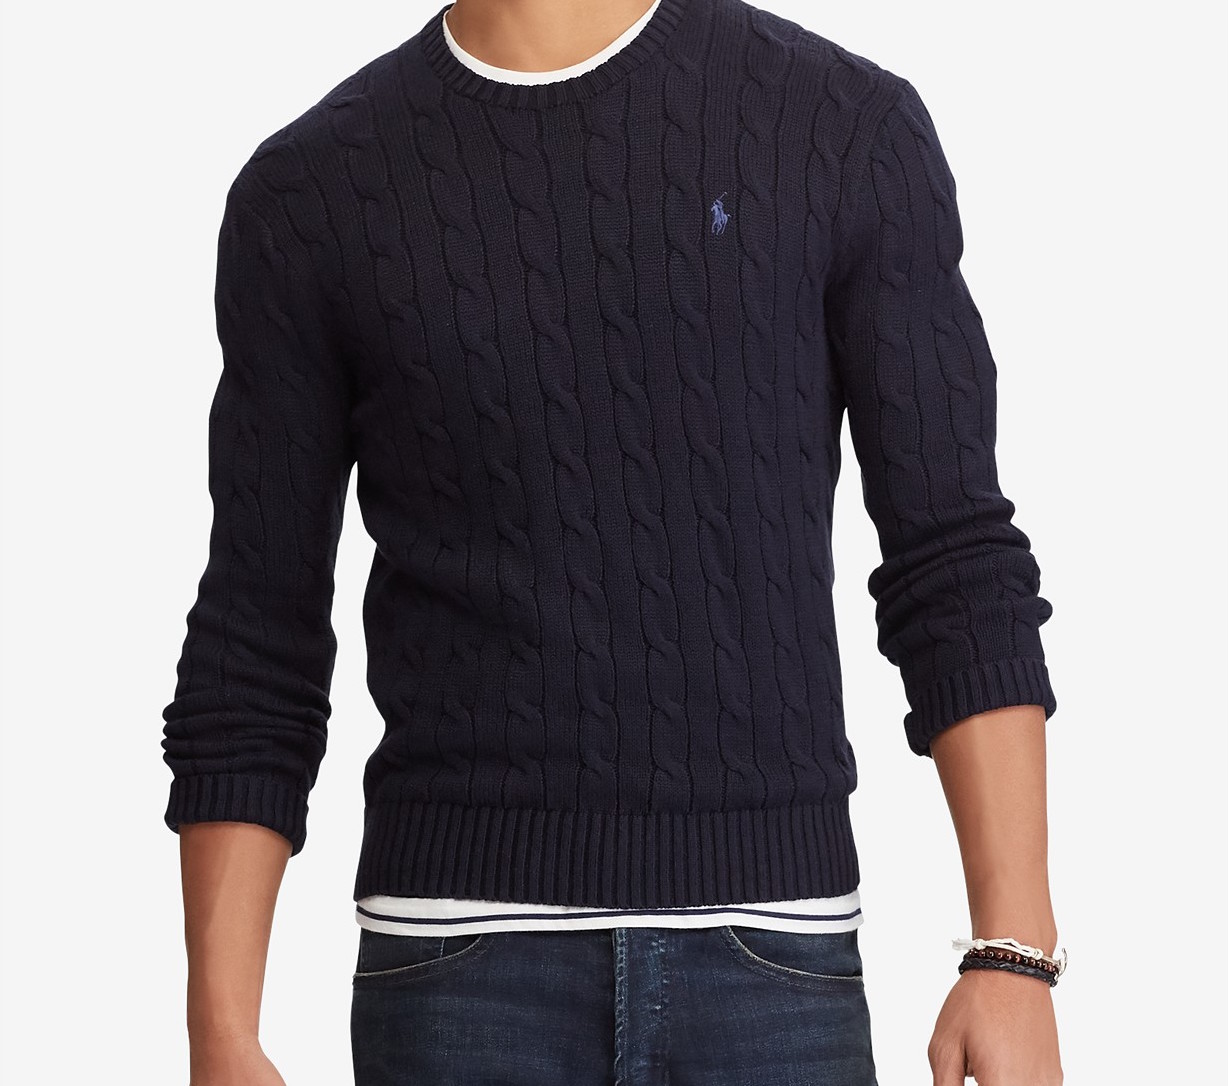 810f620718e4c The Absolute Best Sweaters for Guys and How to Wear Them